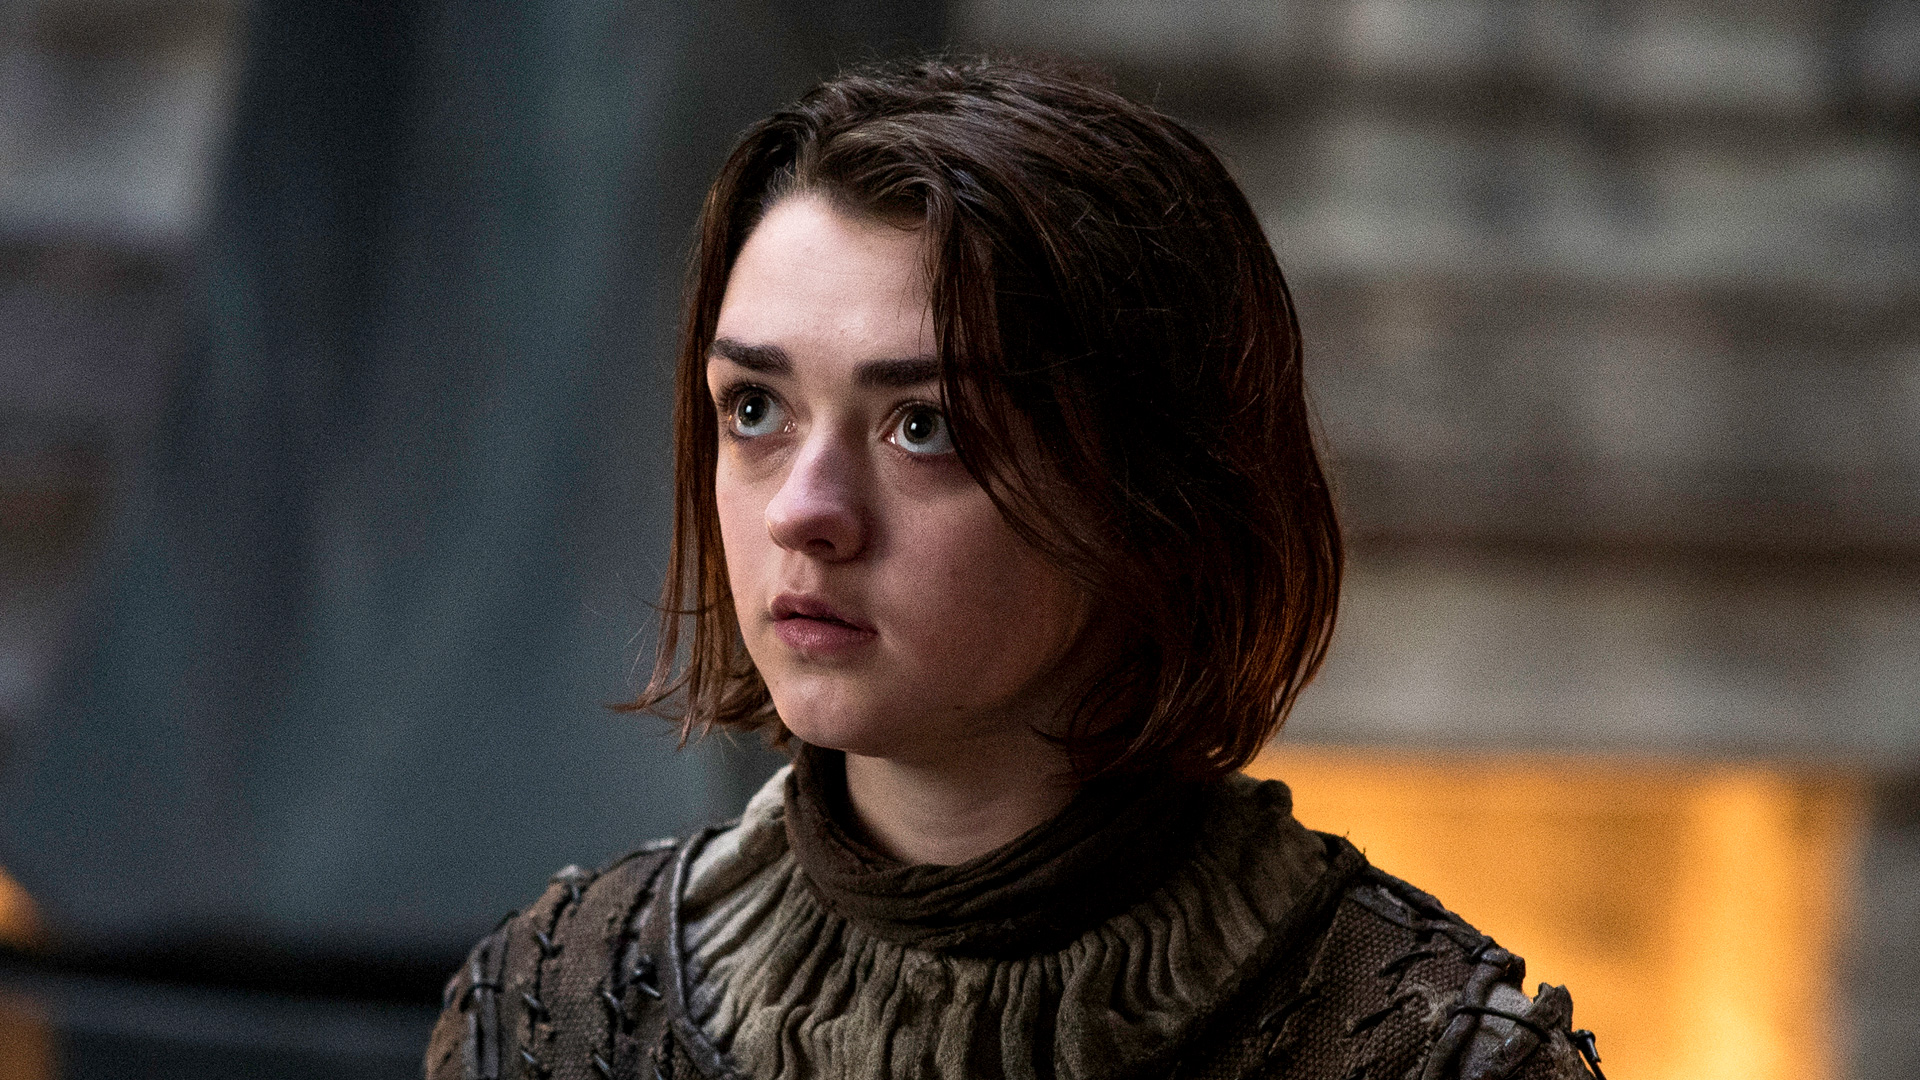 Maisie Williams Confirms When Game of Thrones Season 8 Will Premiere